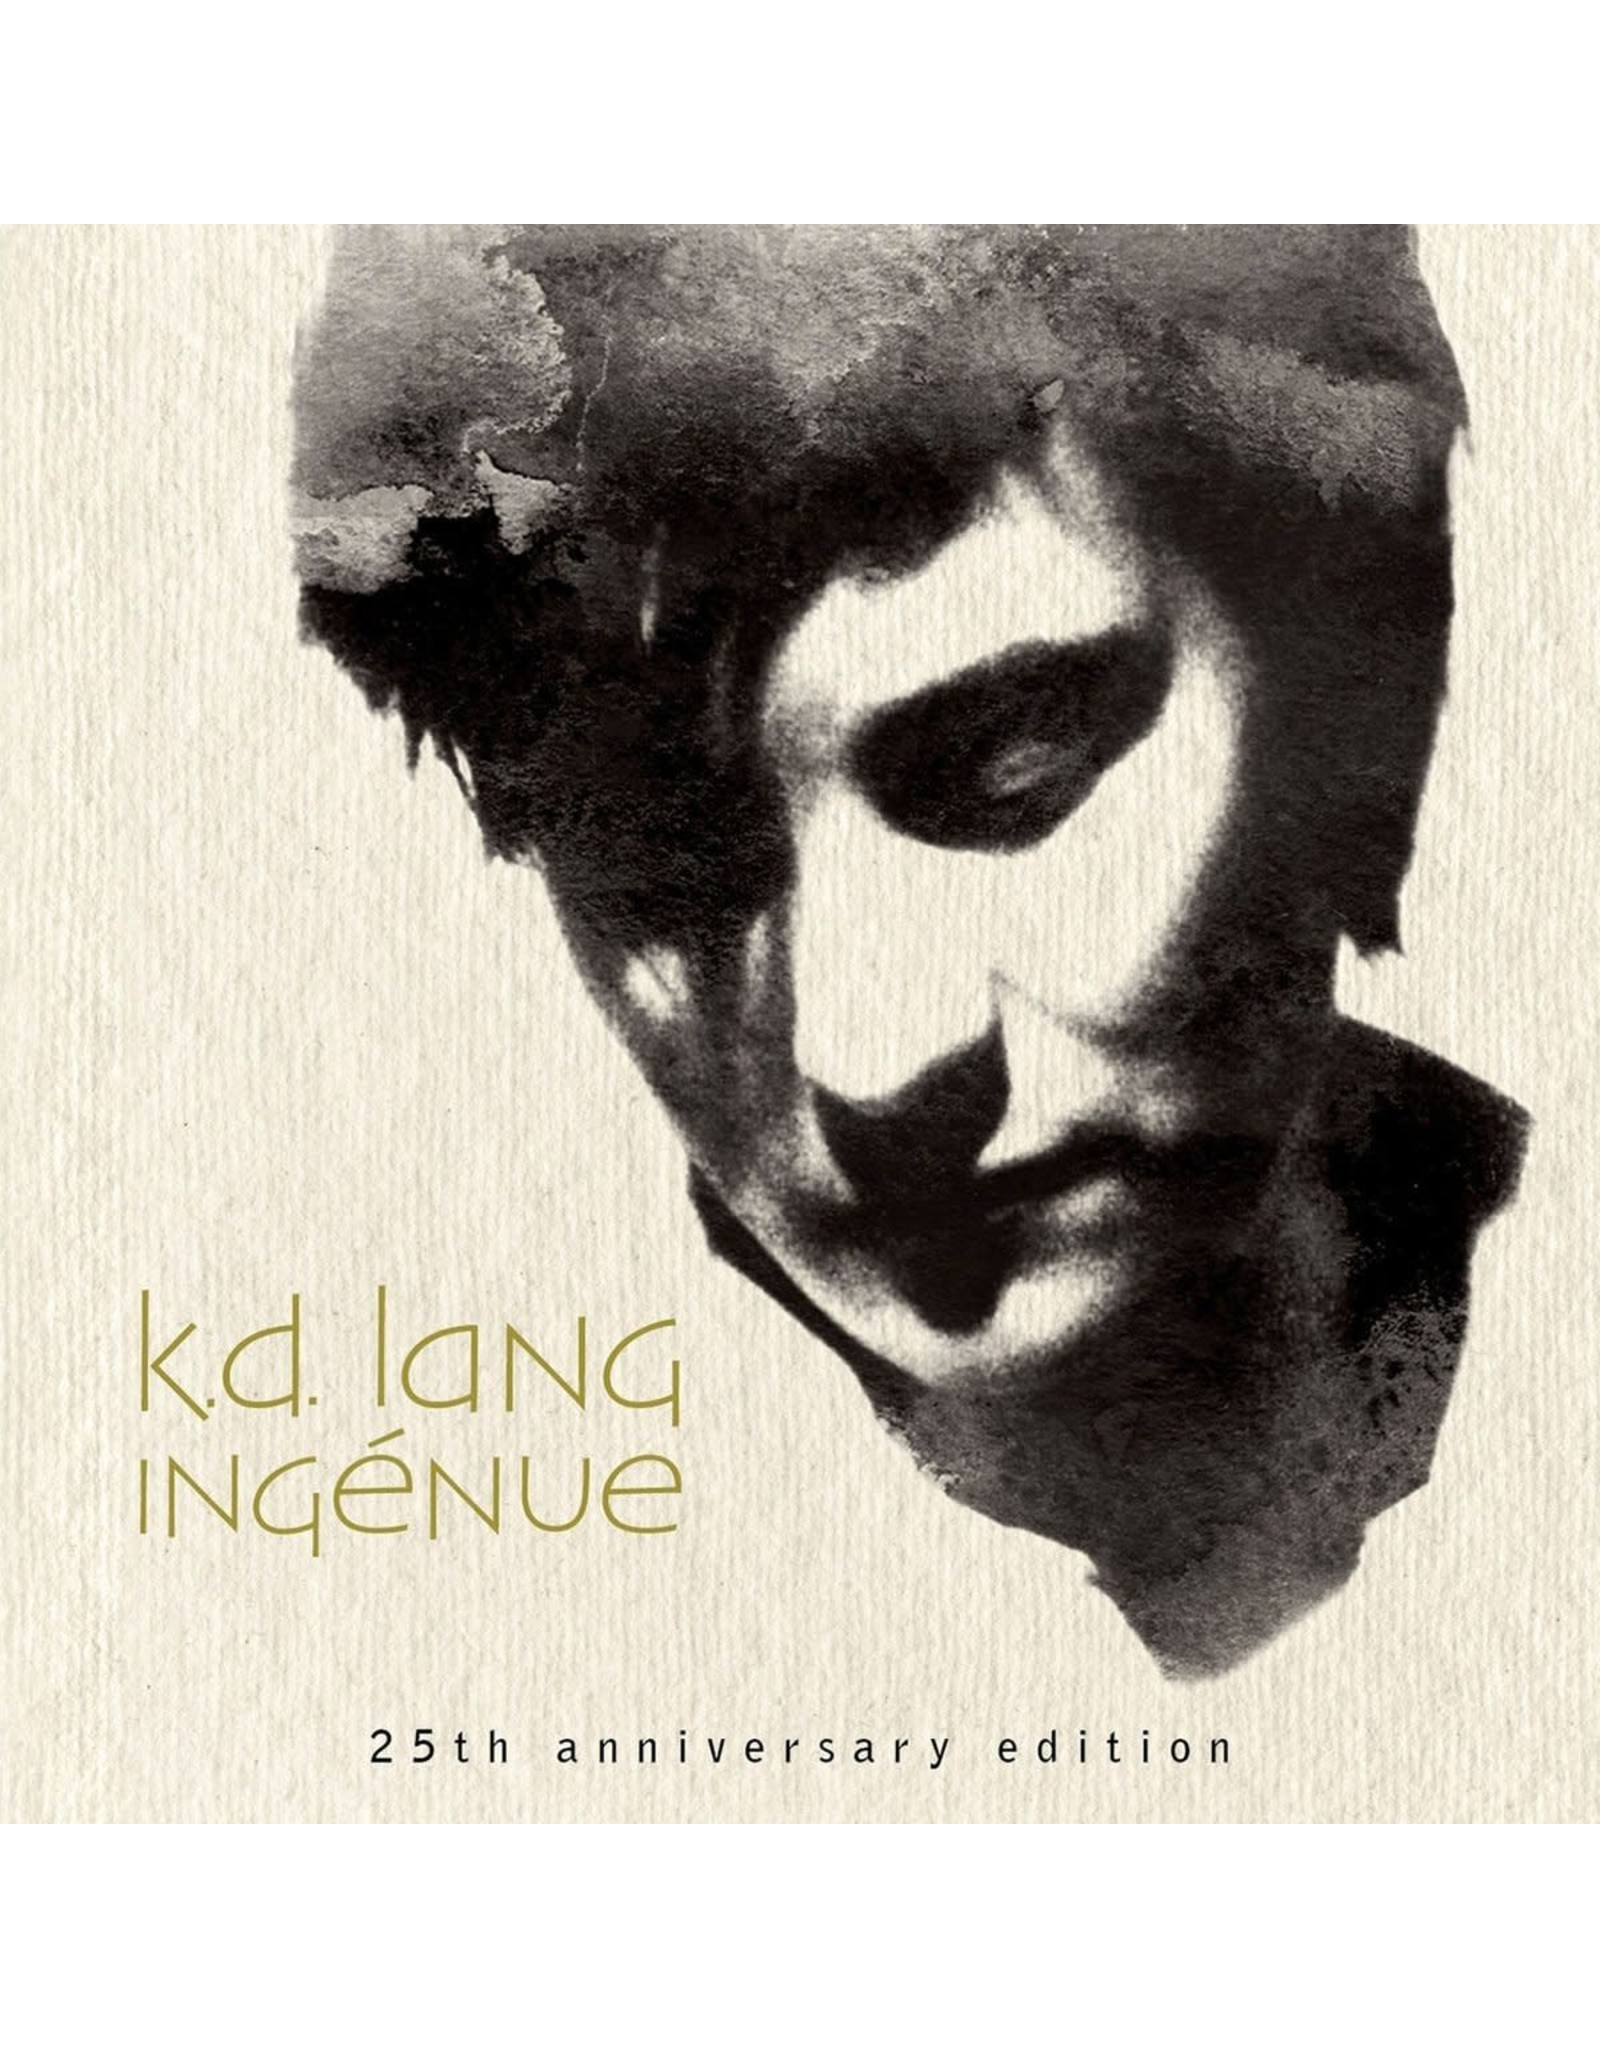 k.d. lang - Ingenue (25th Anniversary Deluxe Edition)